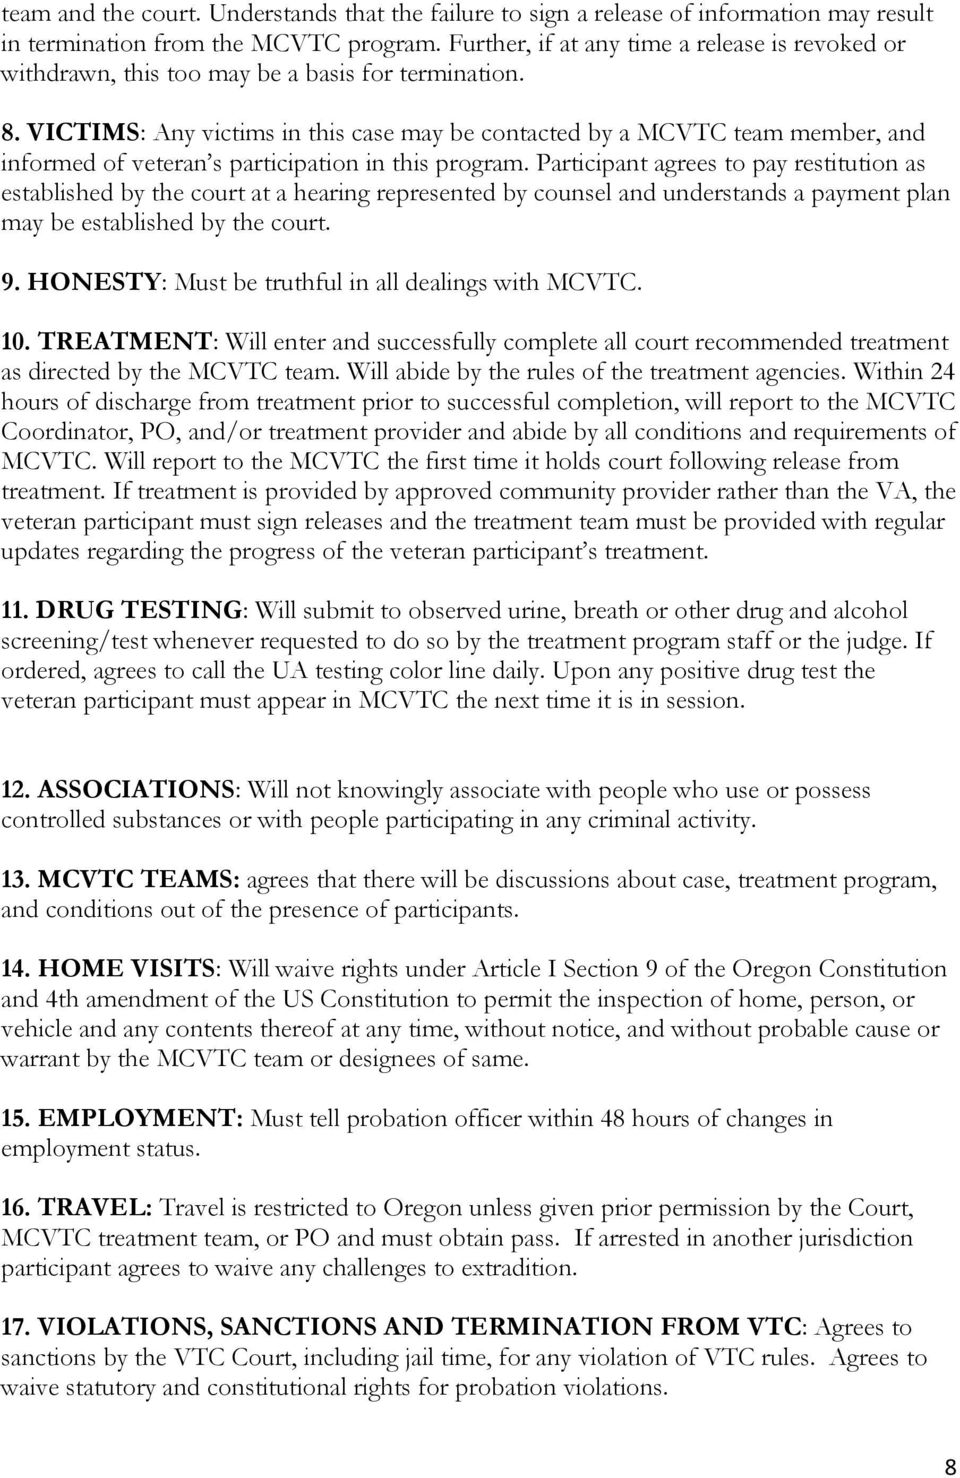 MARION COUNTY VETERANS TREATMENT COURT POLICES AND